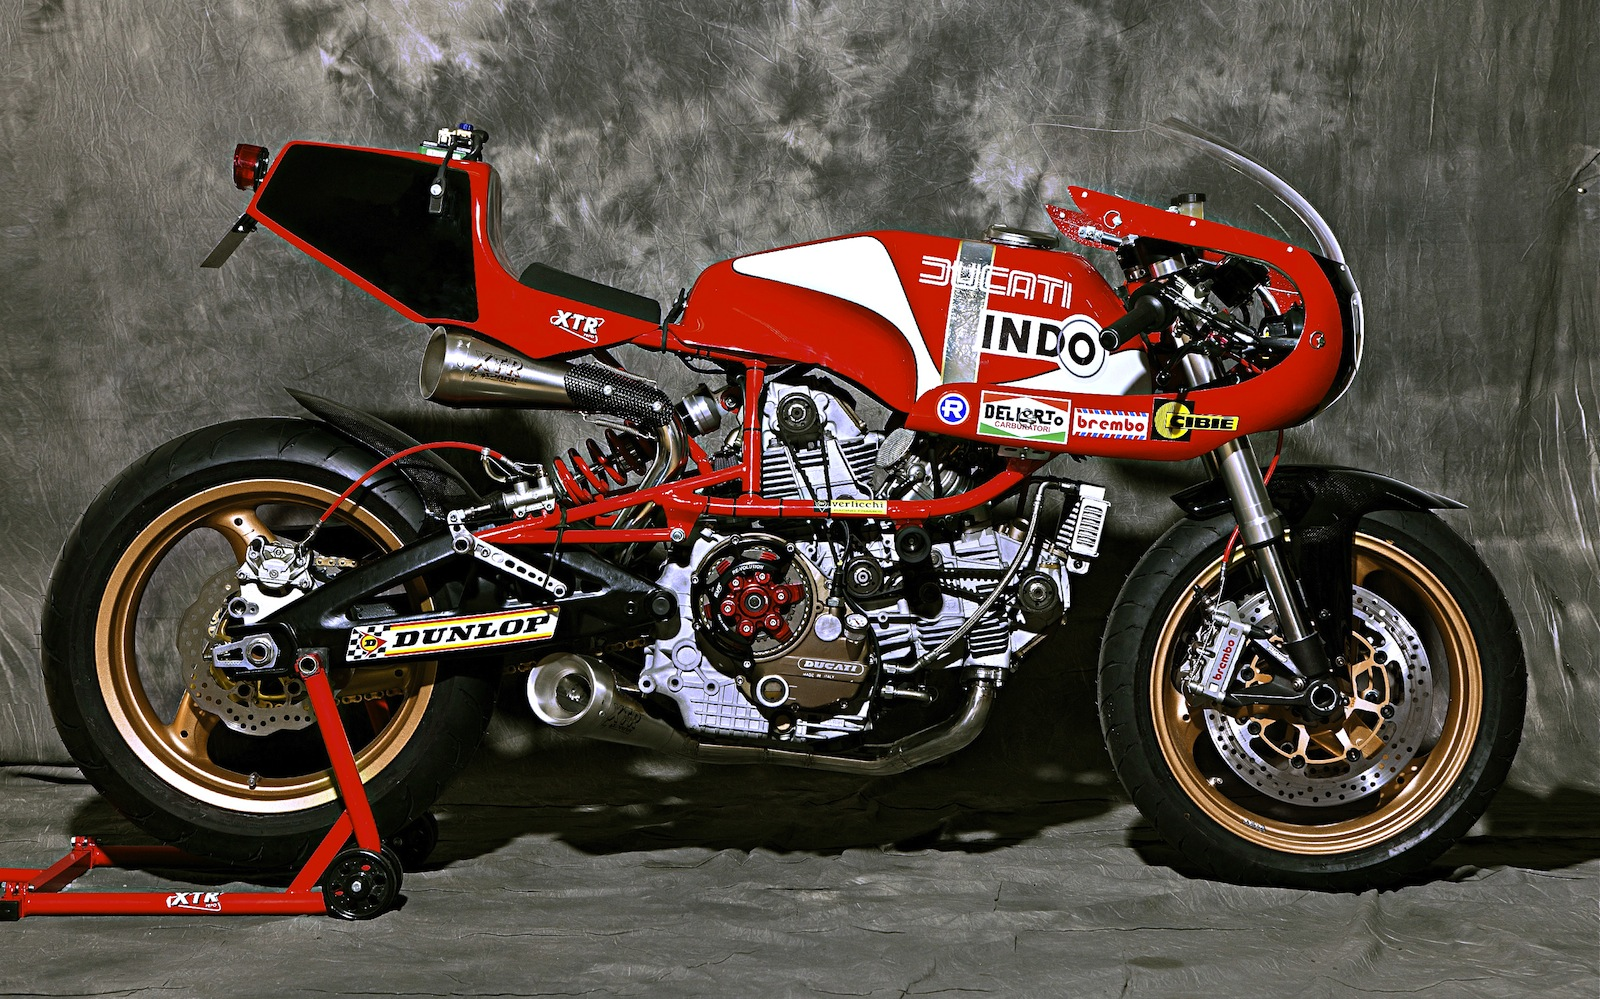 Hour Glass Ducati